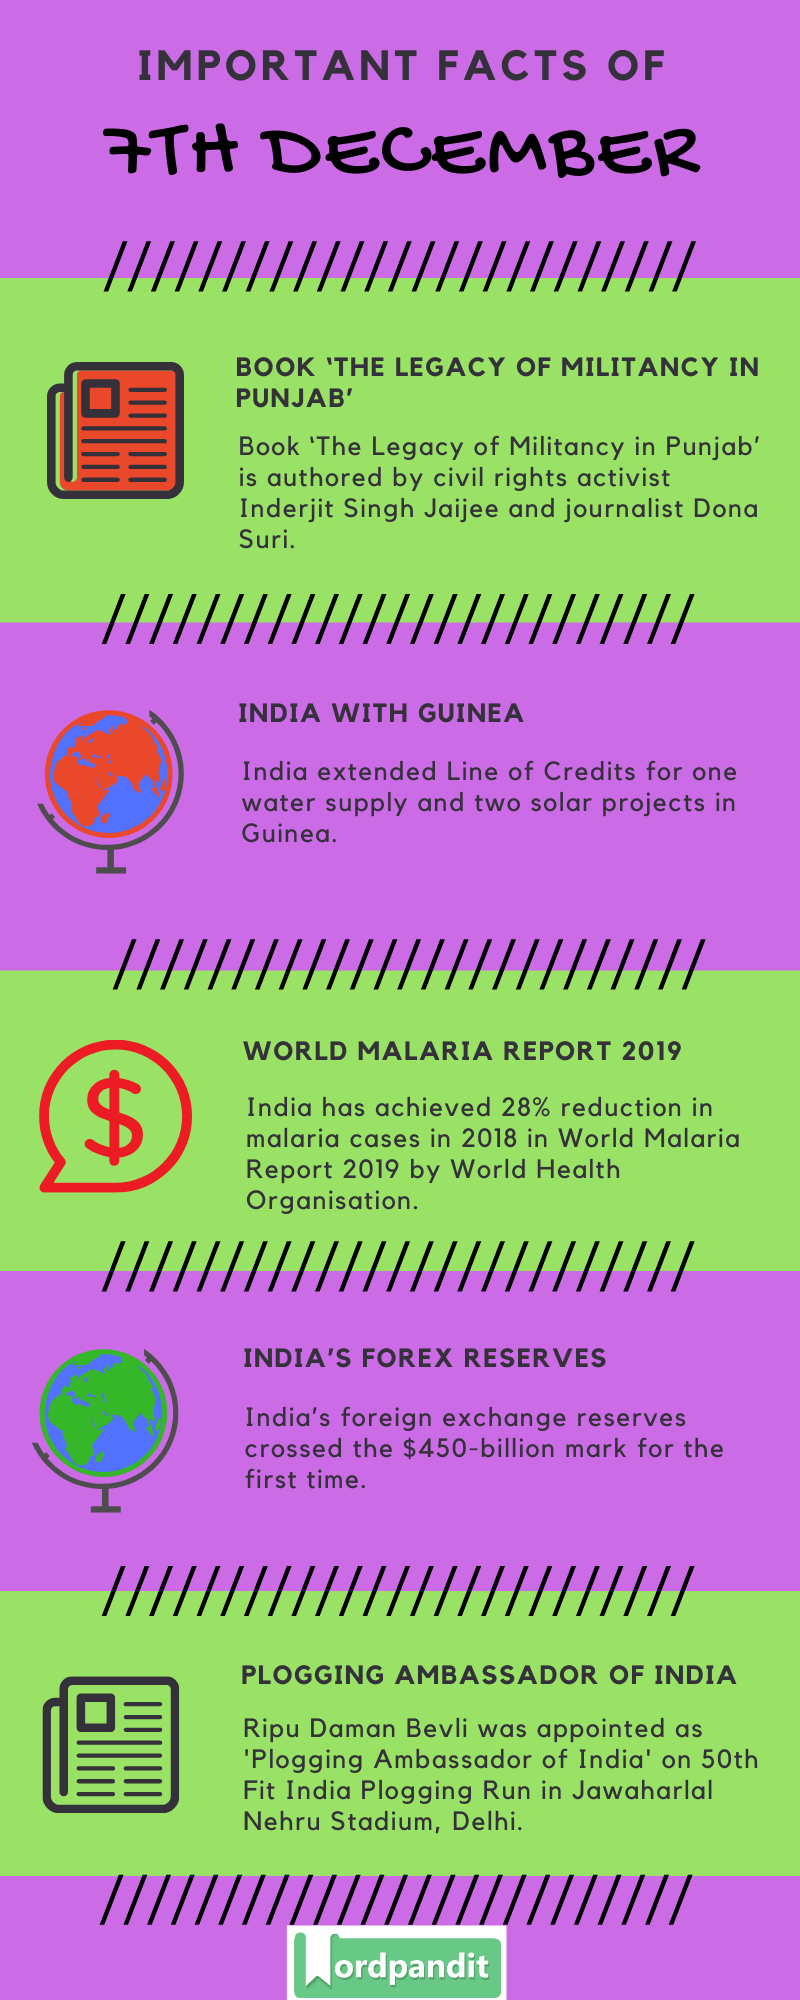 Daily Current Affairs 7 December 2019 Current Affairs Quiz 7 December 2019 Current Affairs Infographic